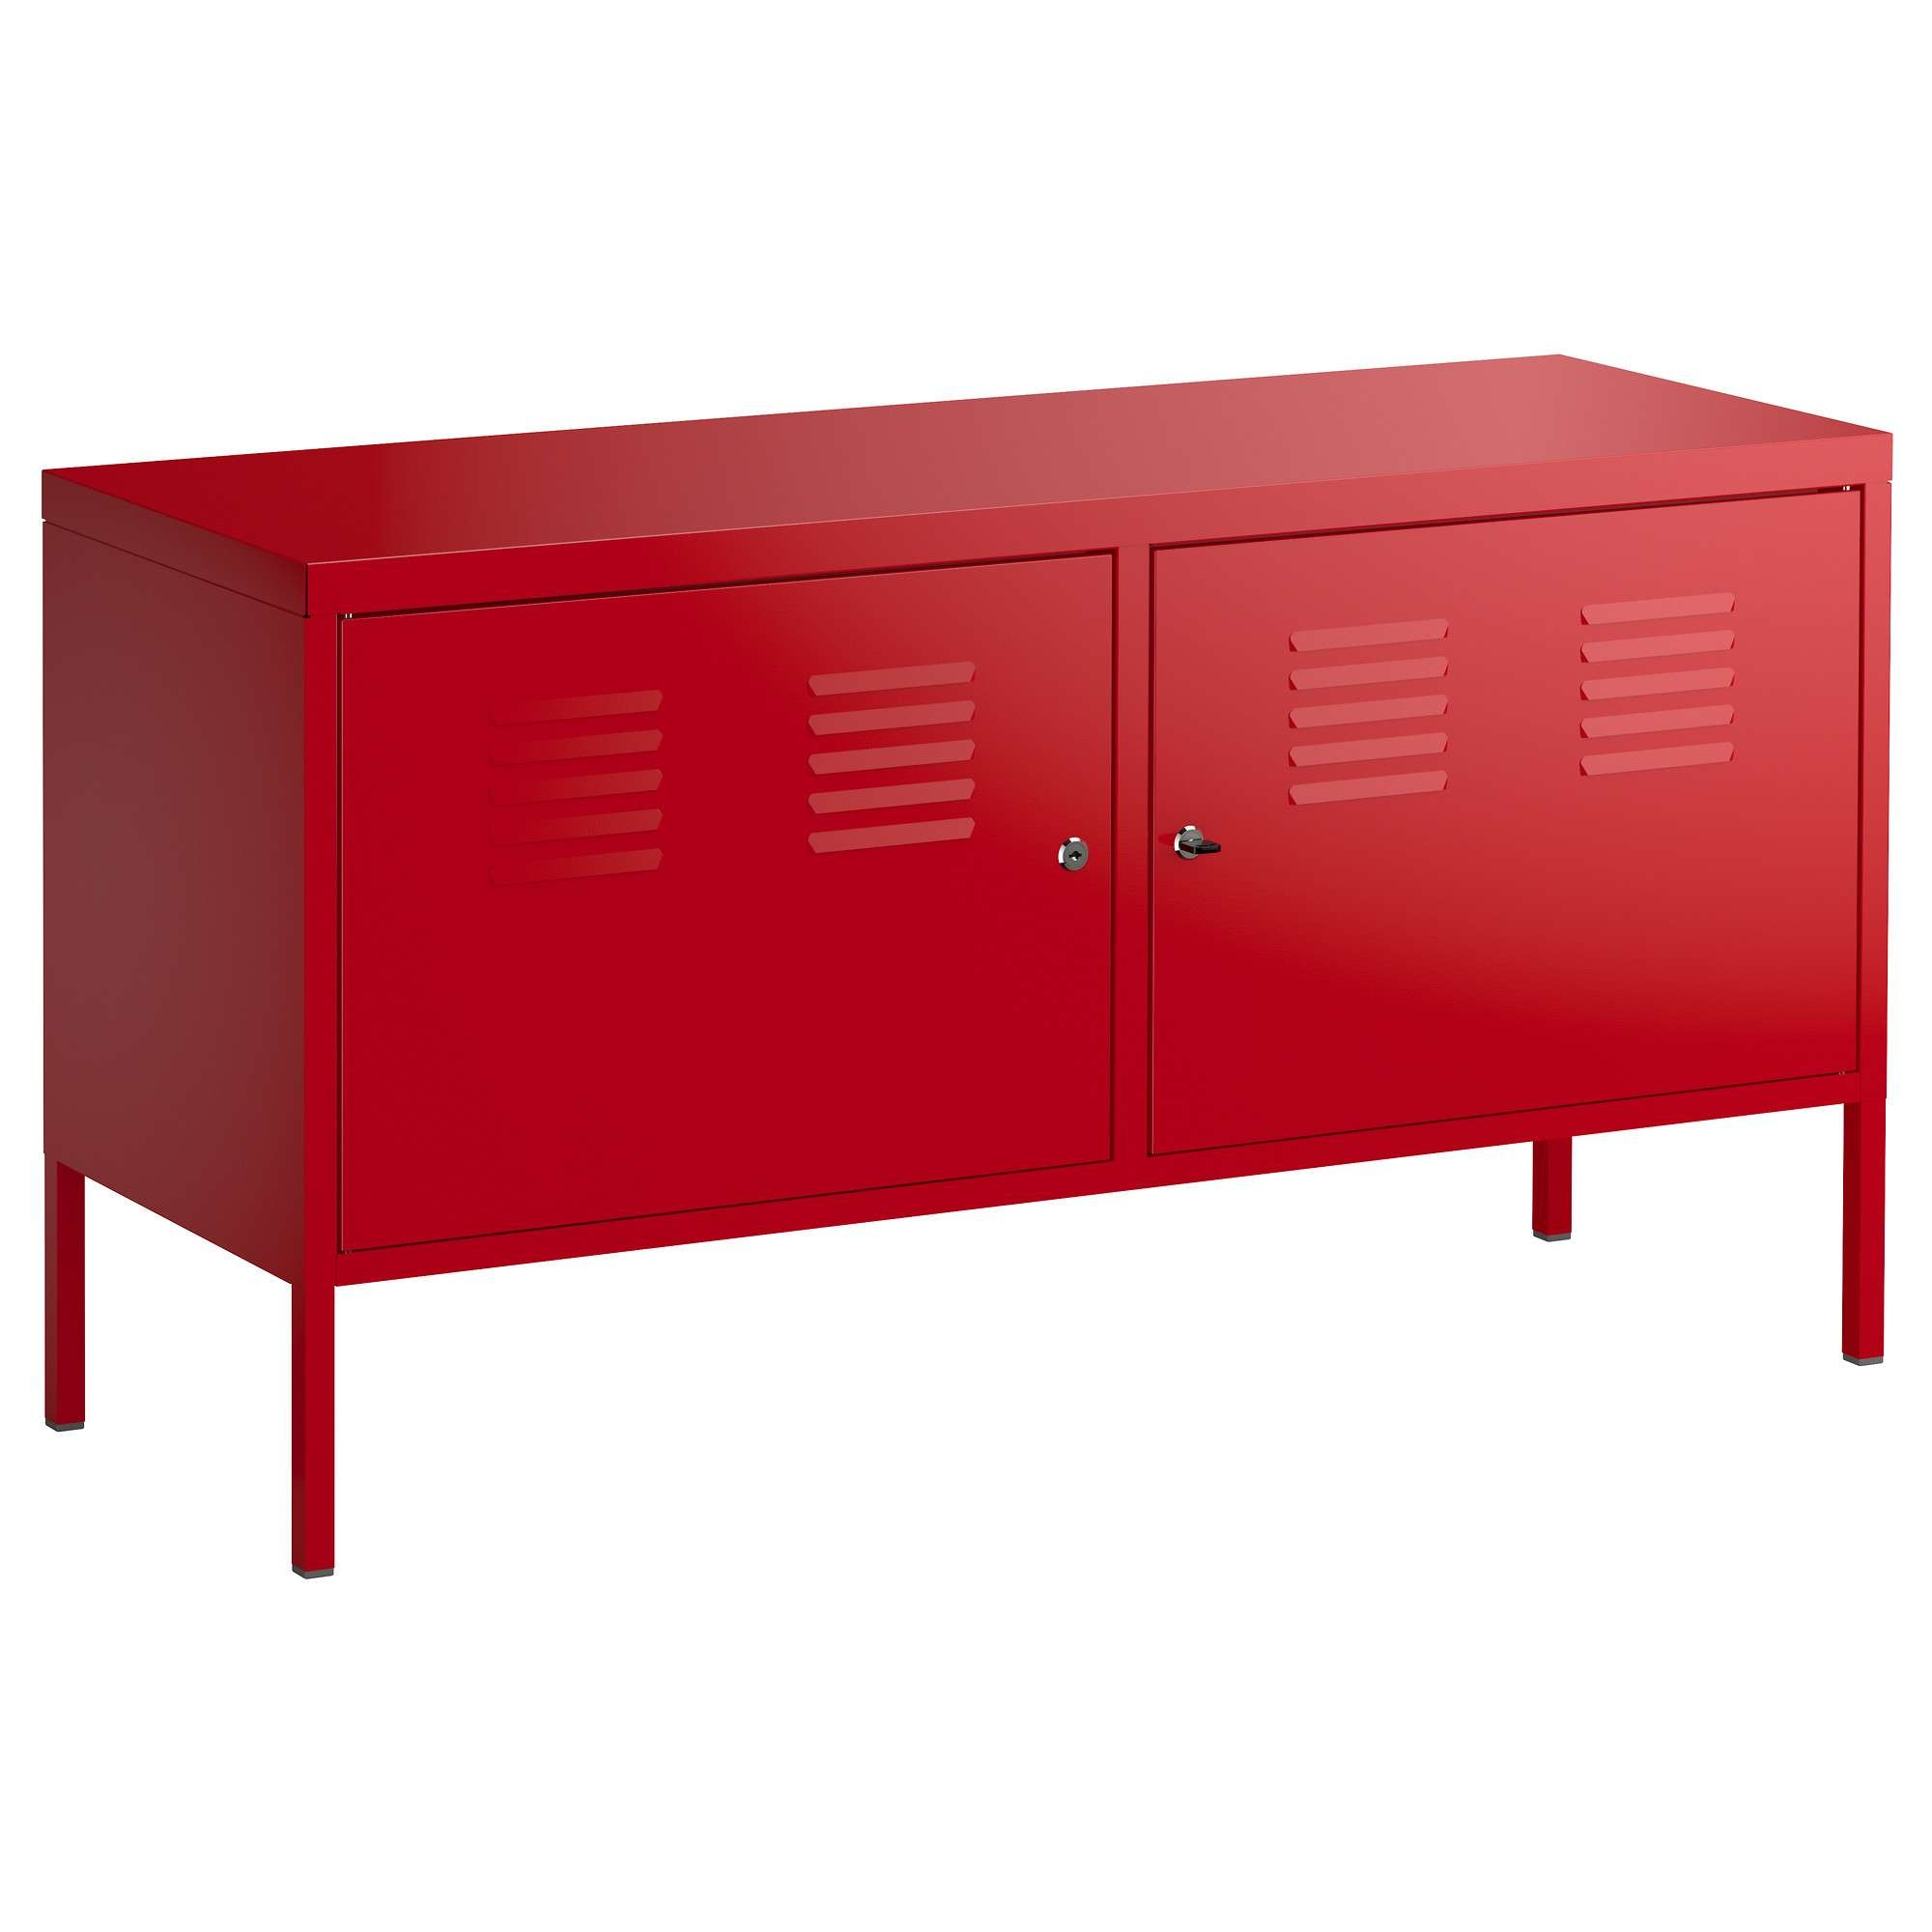 Buffet Tables & Sideboards – Ikea With Small Sideboards Cabinets (View 1 of 20)